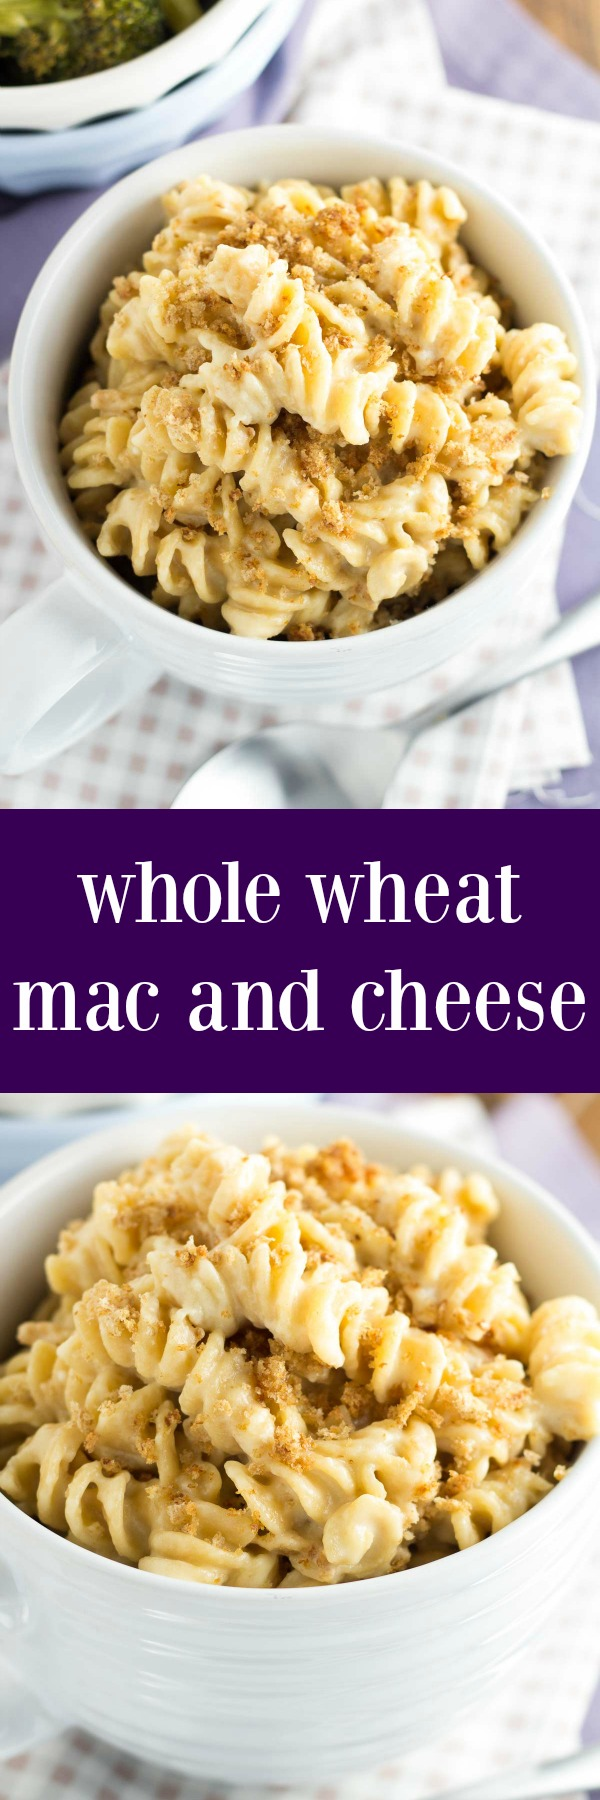 A creamy cheese sauce coats every bite of this healthier Whole Wheat Macaroni and Cheese! An easy weeknight meal that the whole family will love!